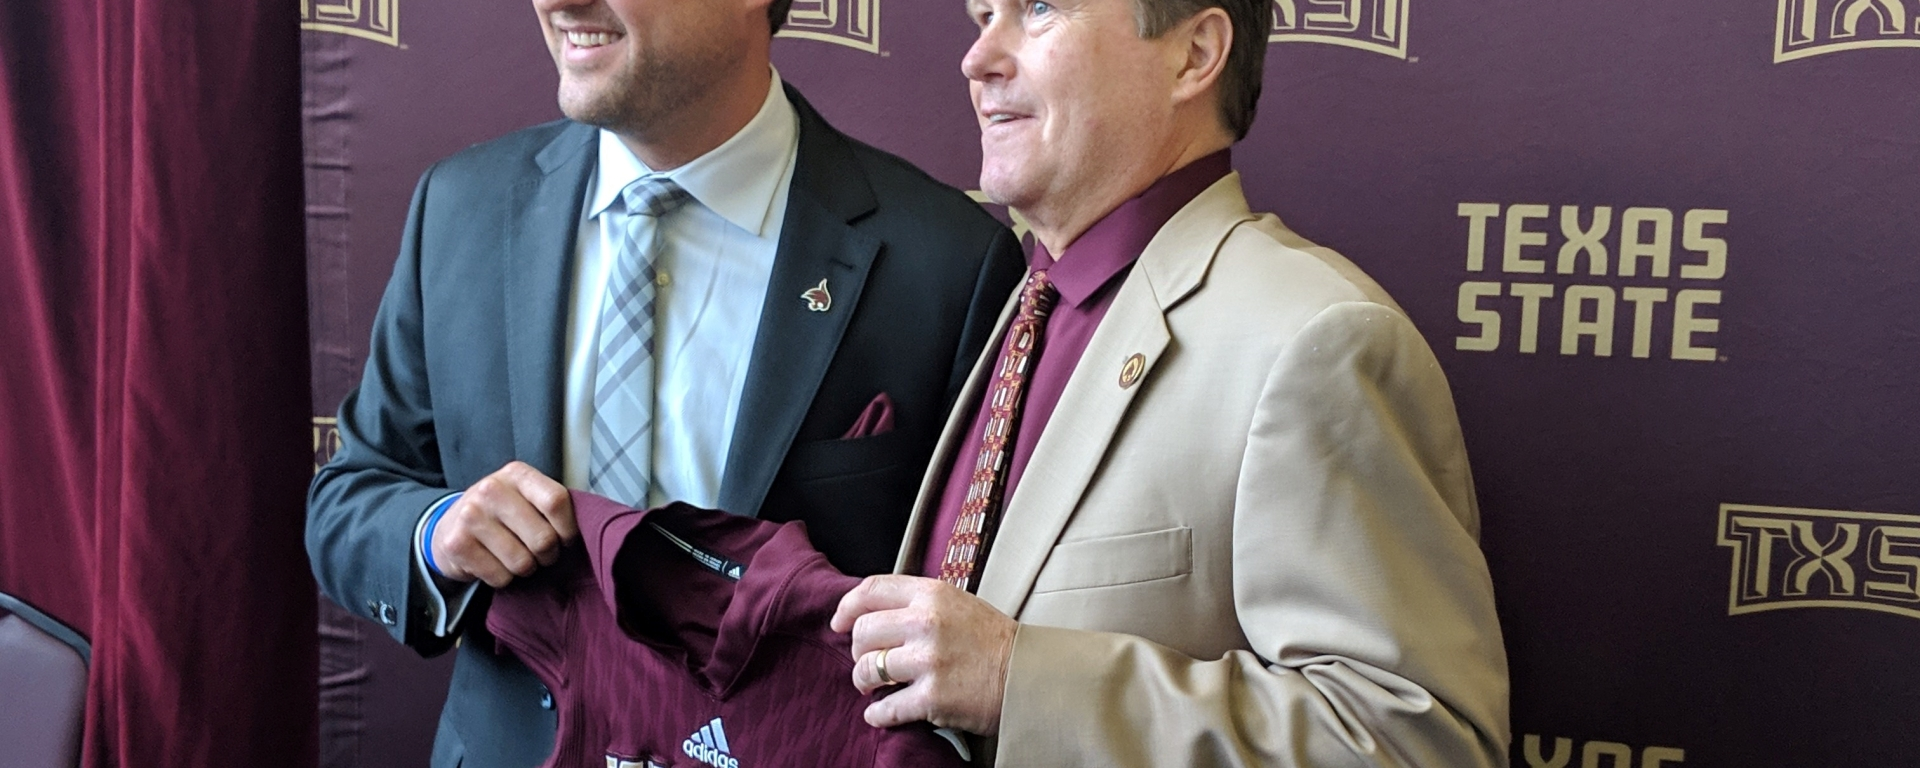 Texas State Athletic Director Larry Teis introduces Head Coach Jake Spavital to the media